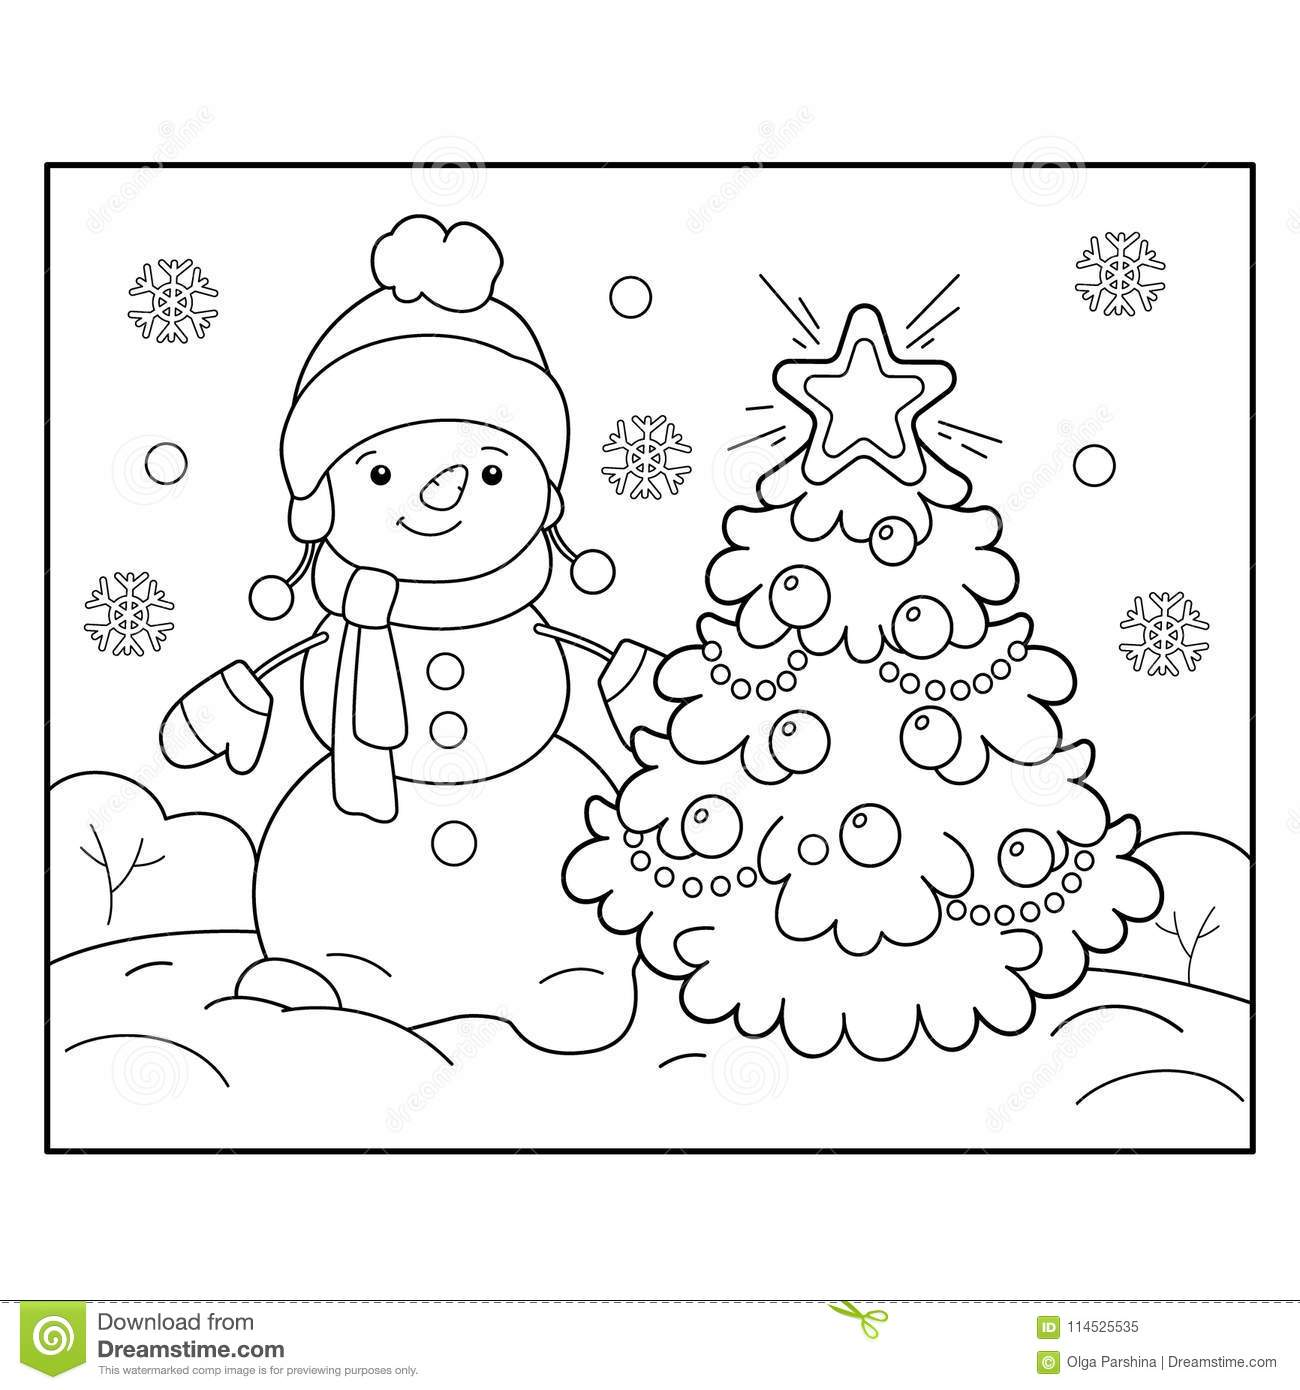 Coloring Page Outline Of Snowman With Christmas Tree